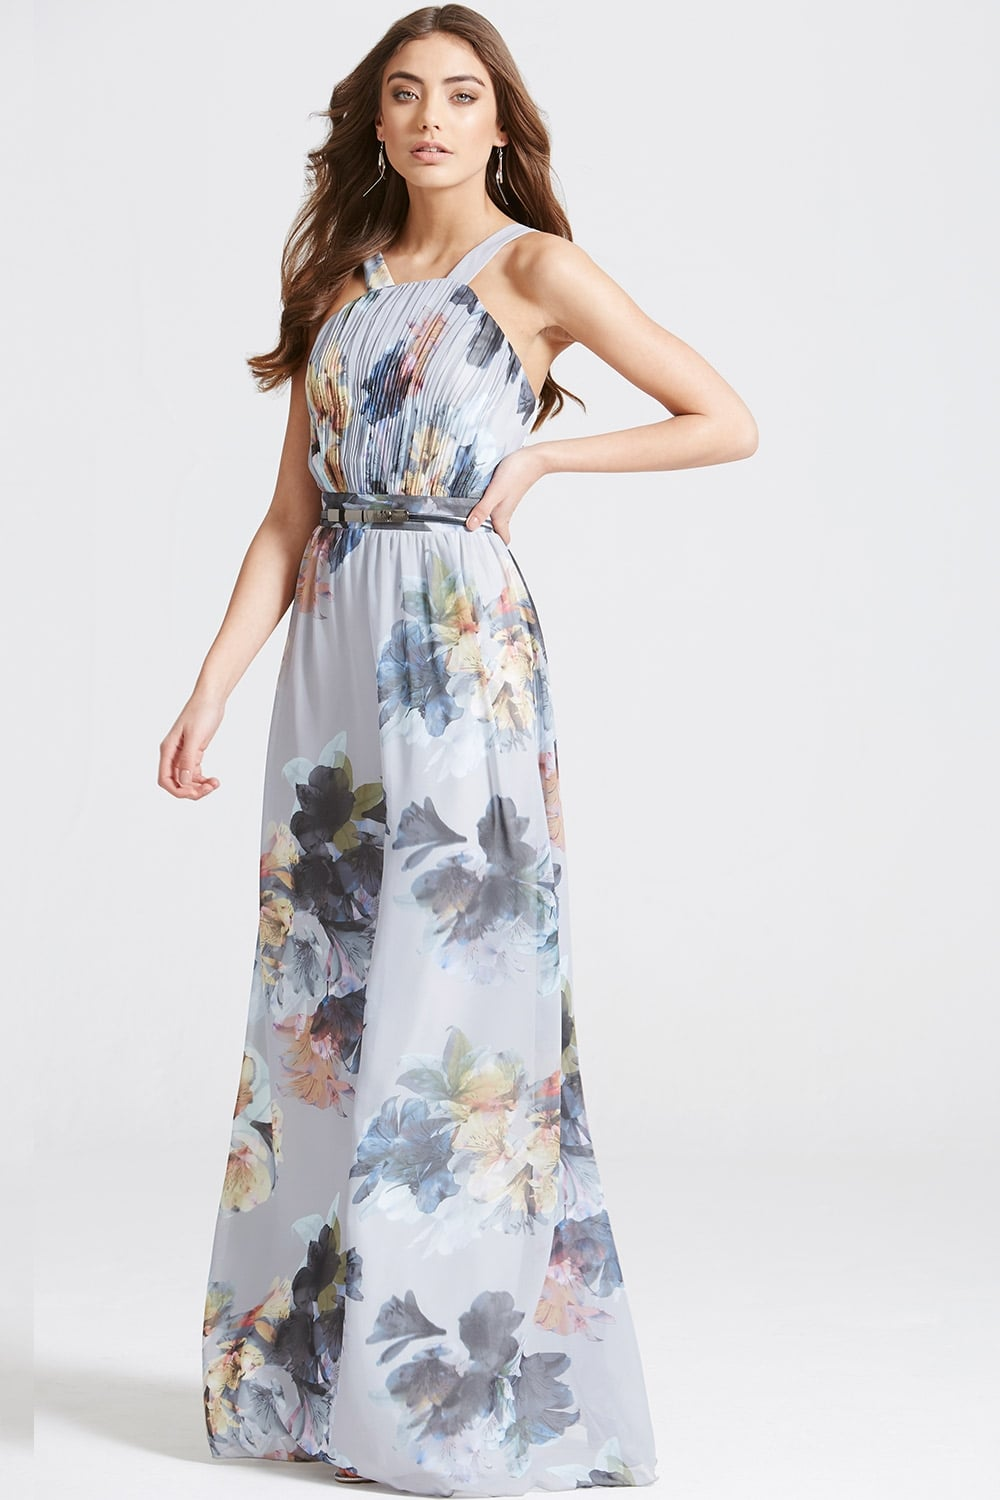 Floral Print Occasion Maxi Dress  from Little Mistress UK